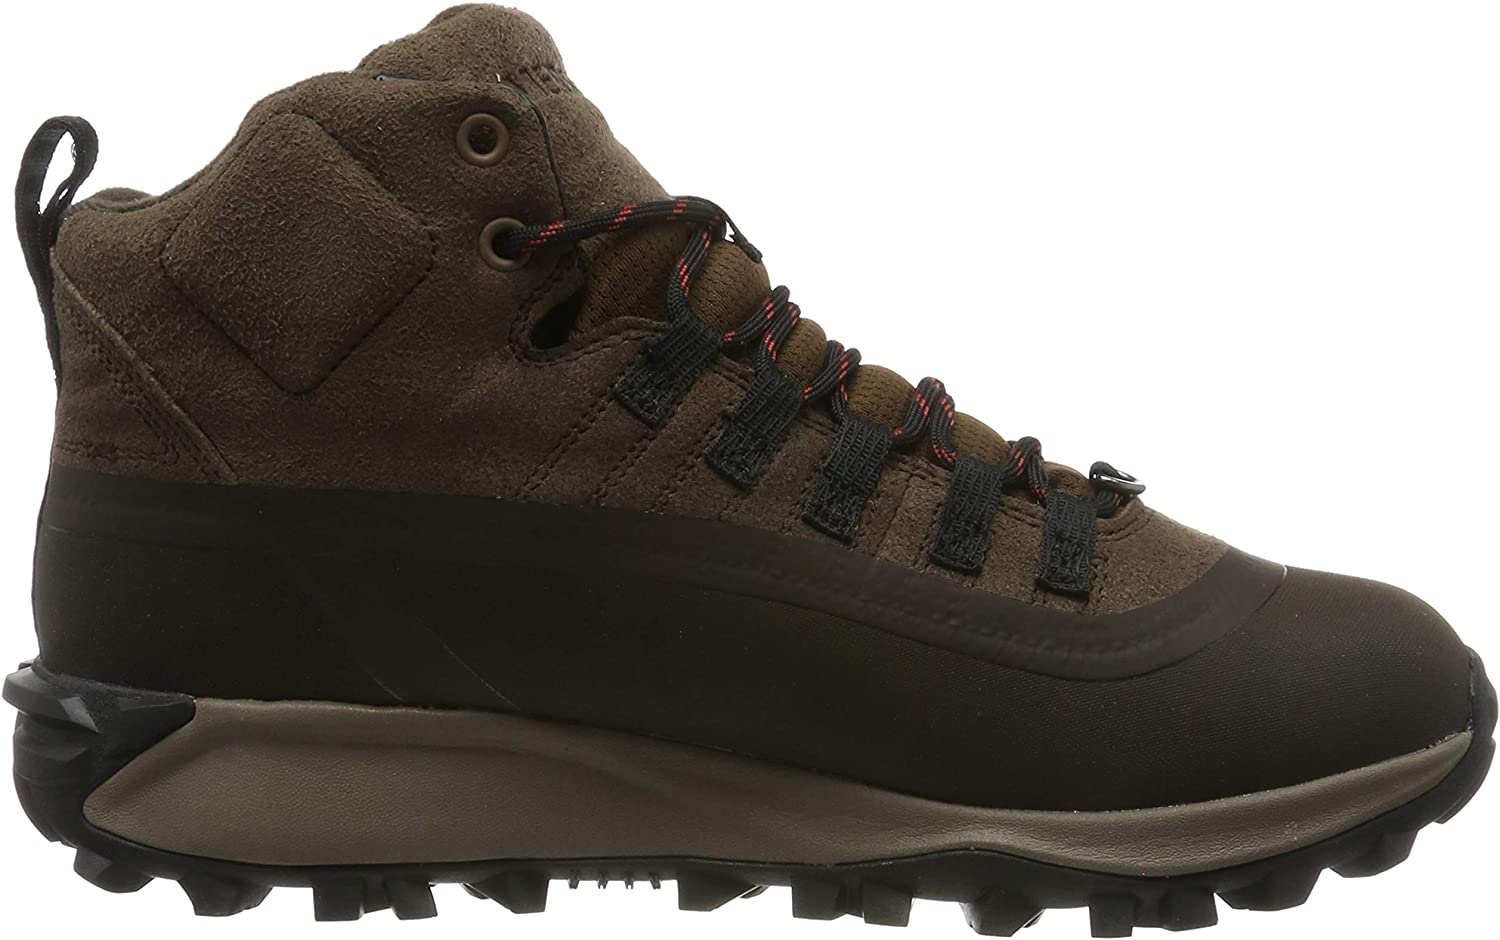 Merrell Men's Thermo Snowdrift Mid Shell Waterproof Snow Boots Earth